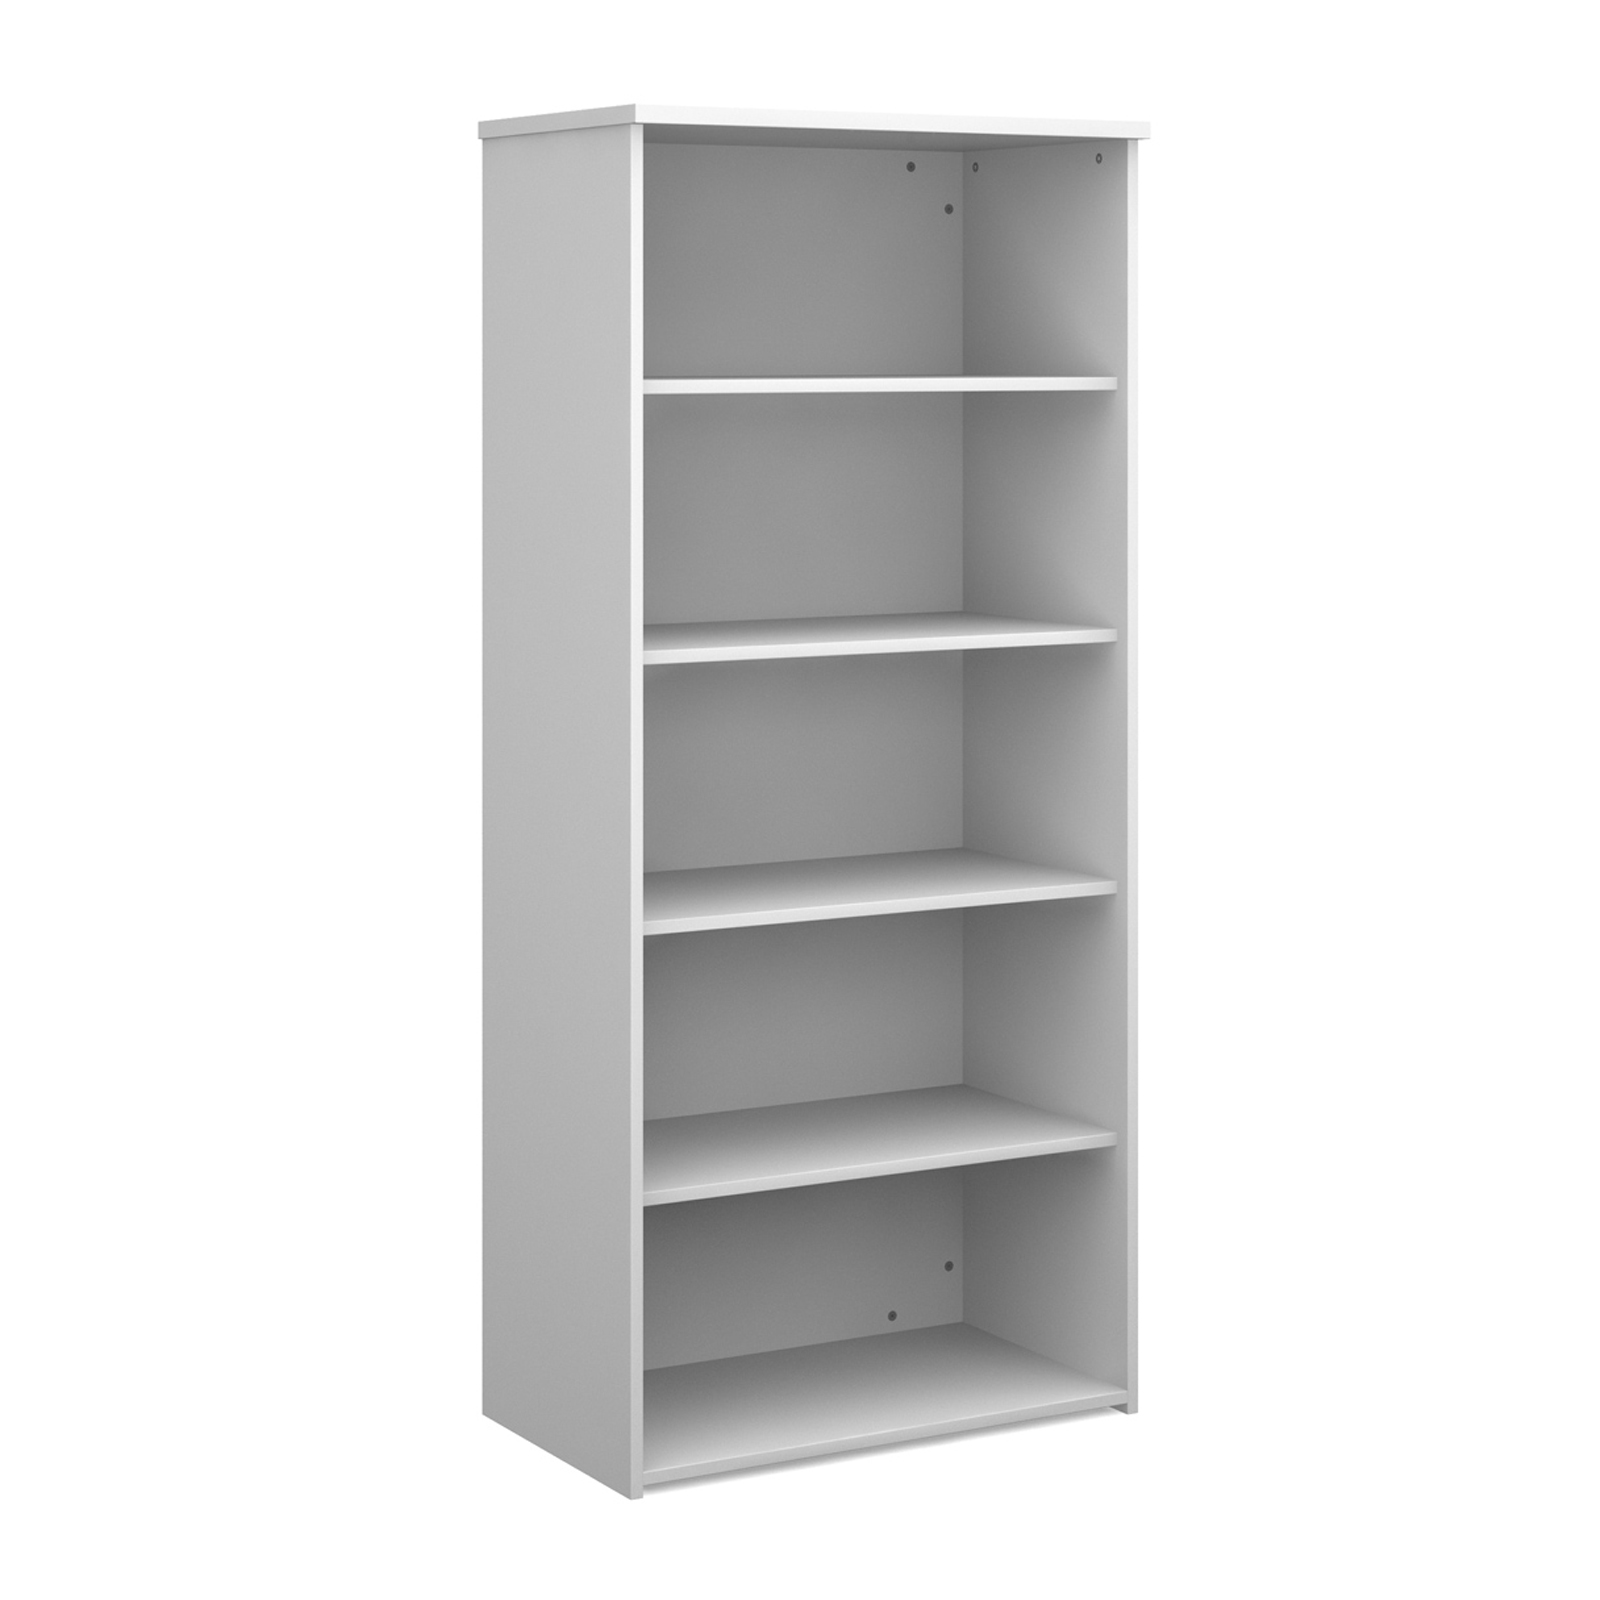 Over 1200mm High Universal bookcase 1790mm high with 4 shelves - white